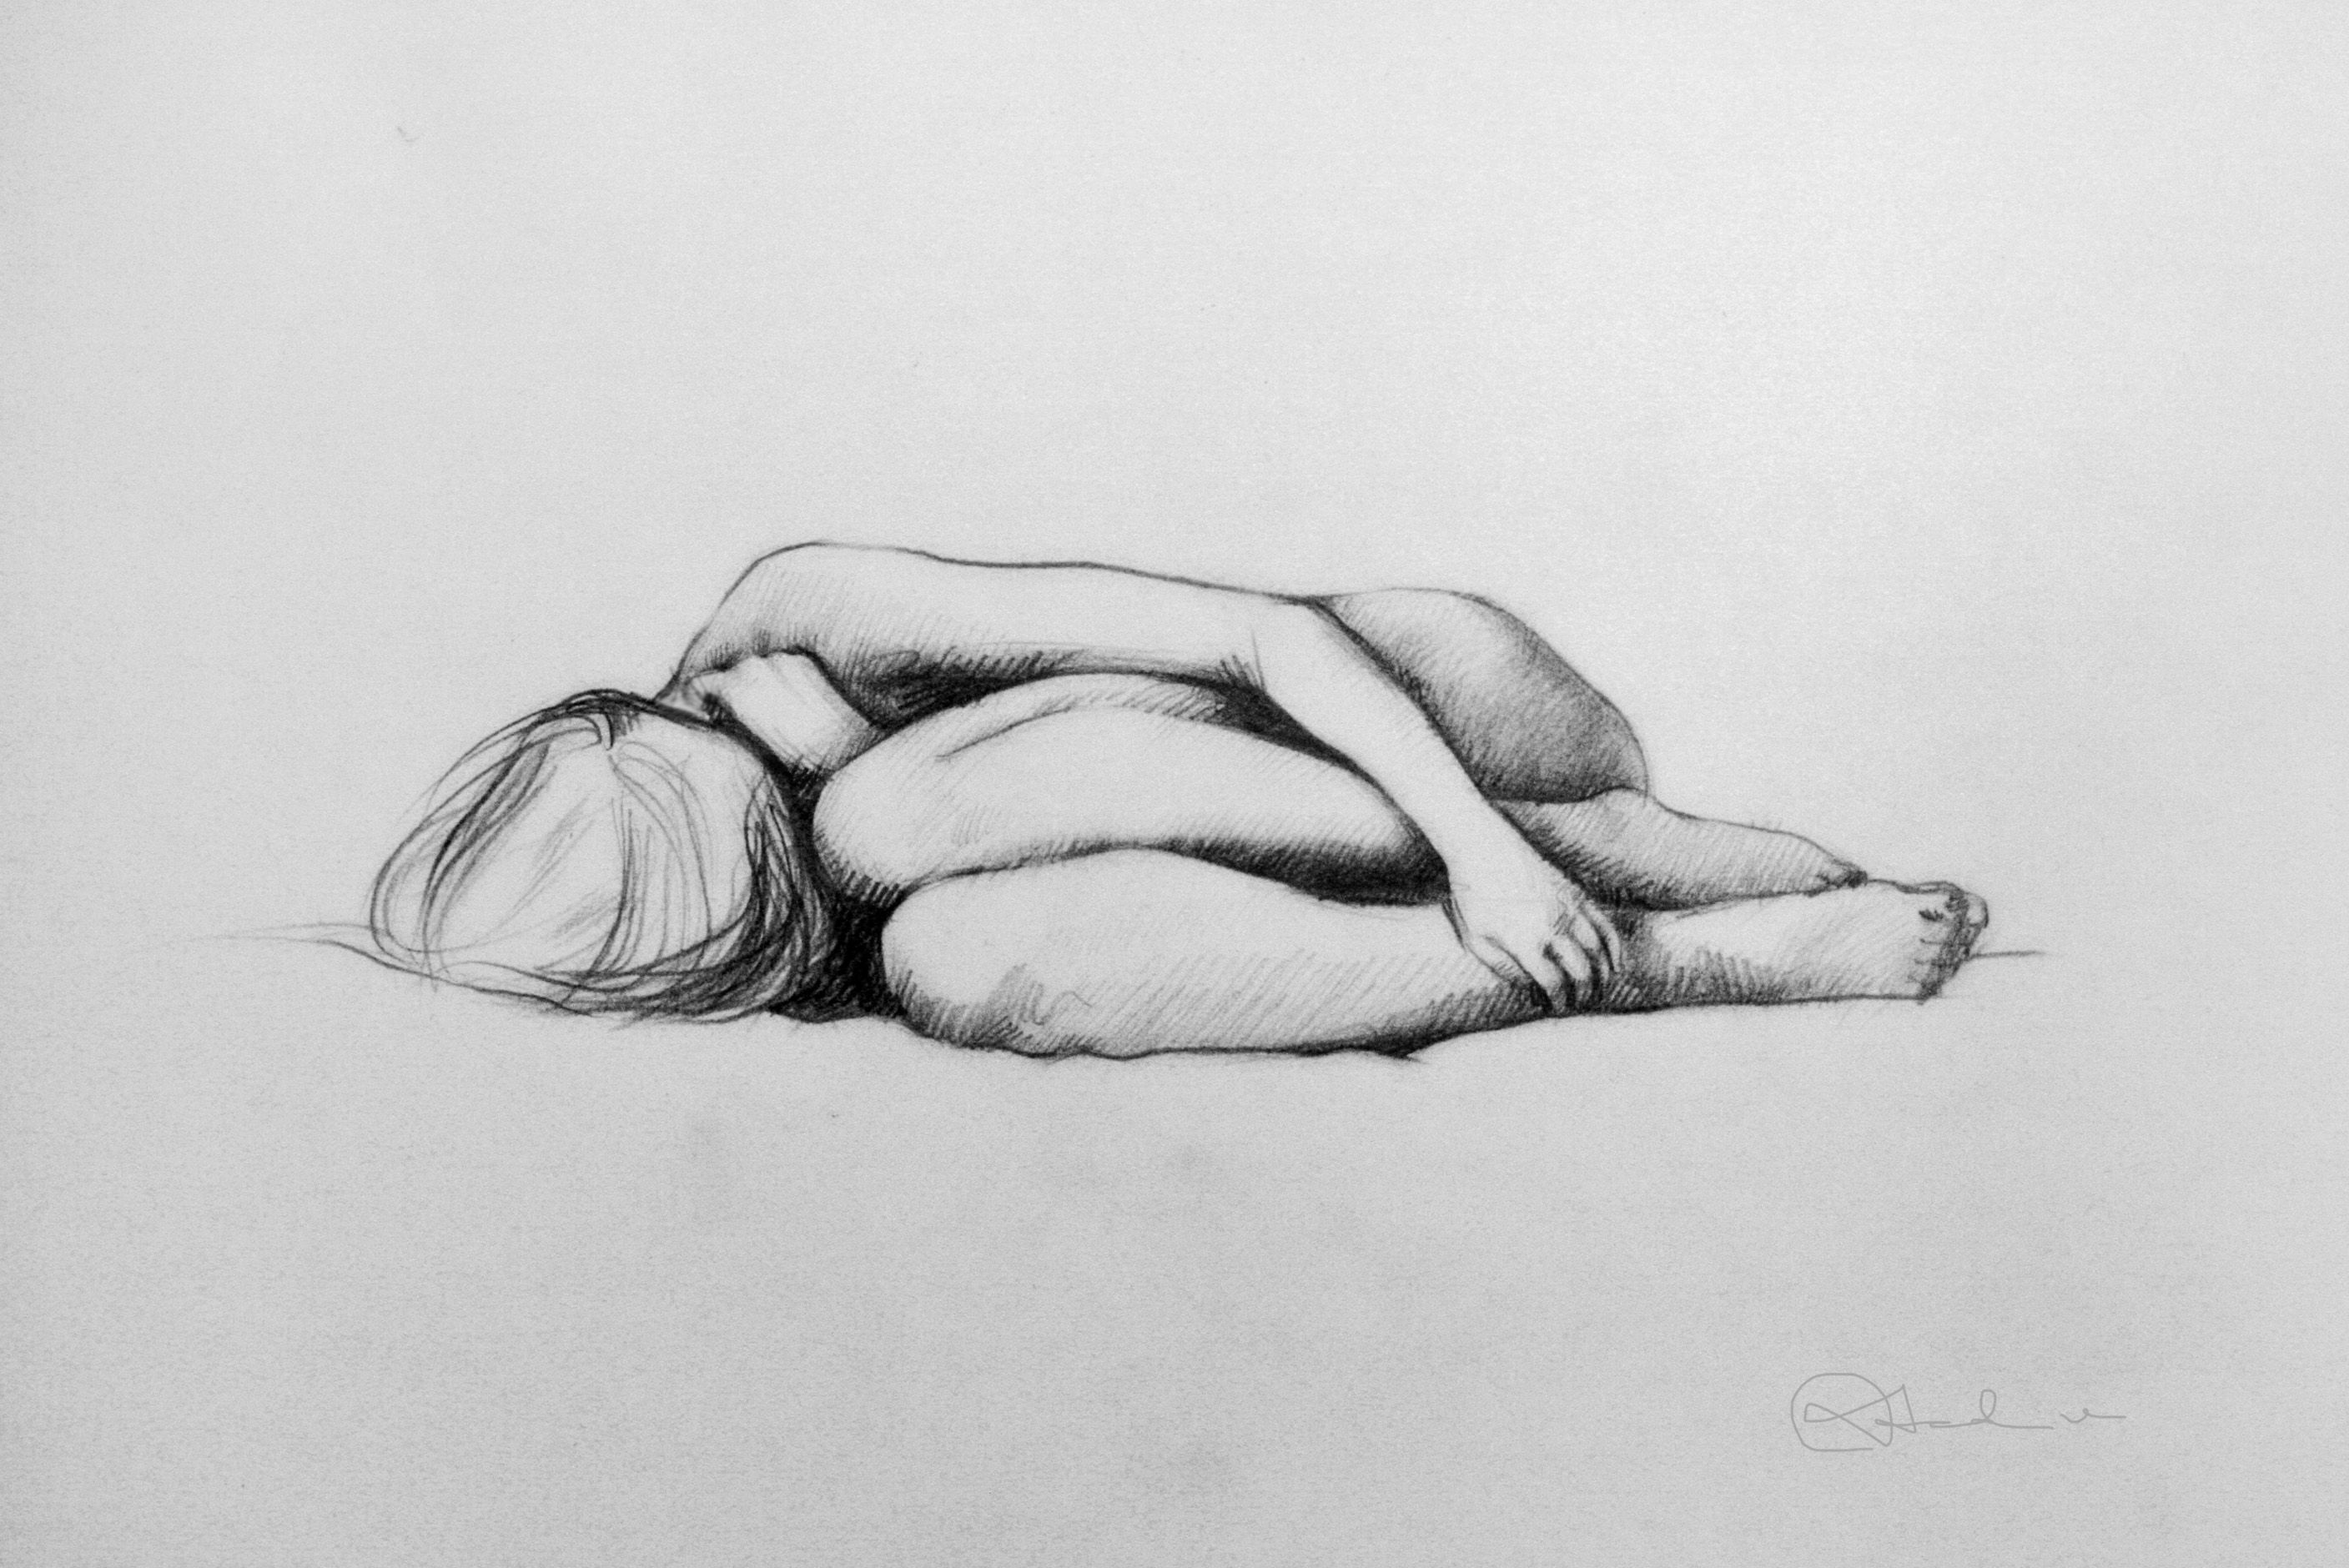 Pencildrawing by me sad art sad girl art sad girl drawing girl